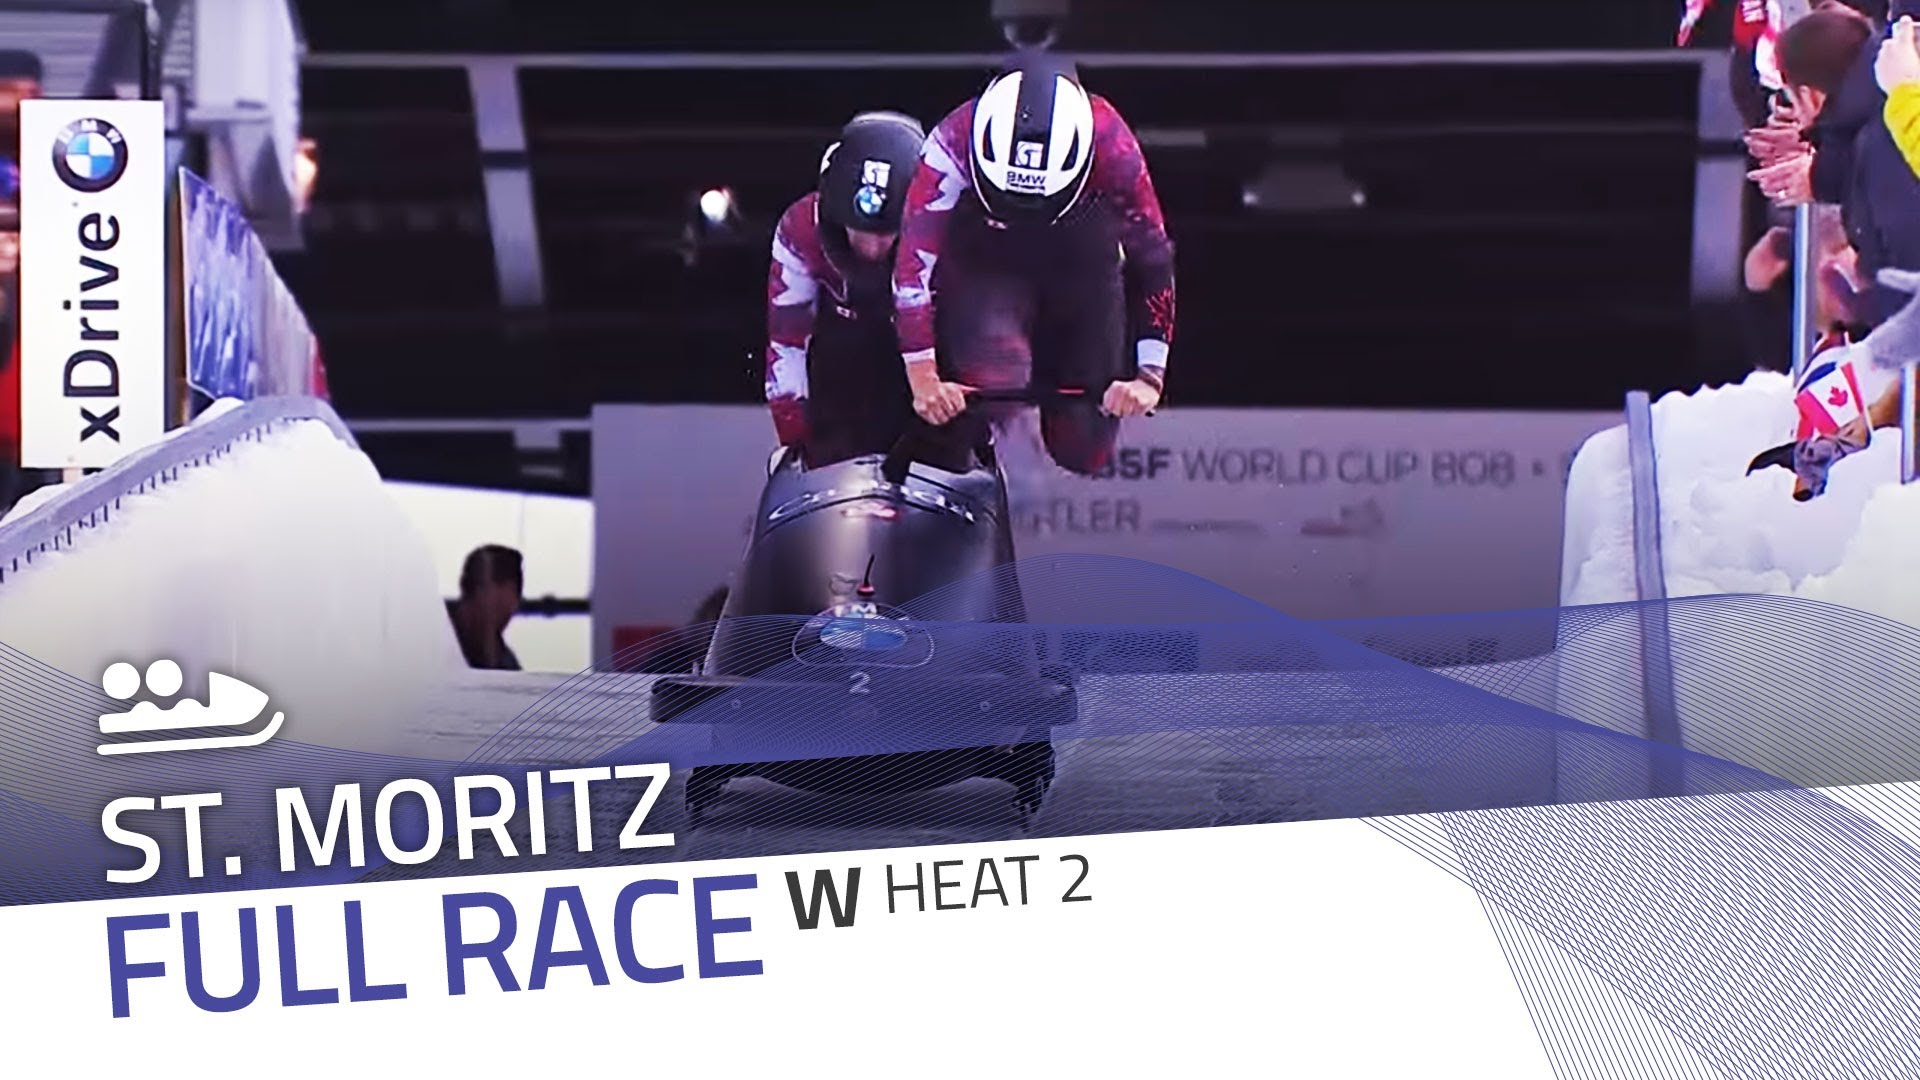 St. moritz | bmw ibsf world cup 2015/2016 - women's bobsleigh heat 2 | ibsf official